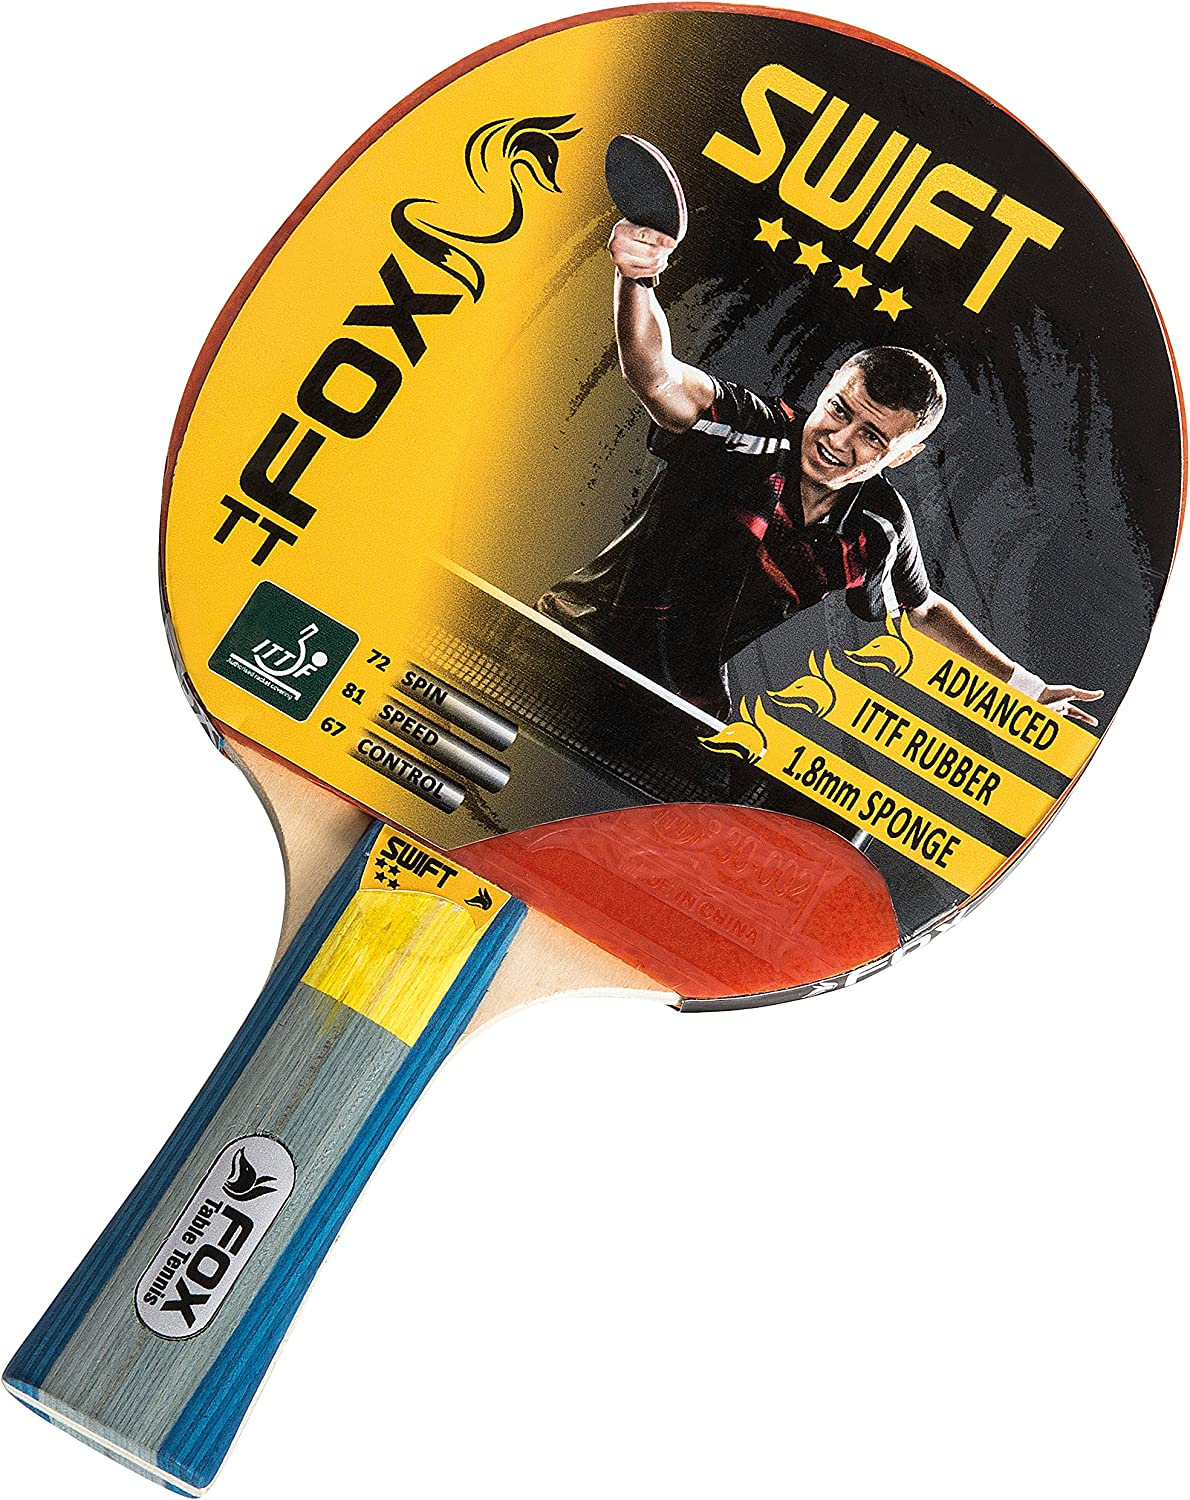 Fox TT Unisex Swift 4 Star – Raqueta de Tenis de Mesa, Color Rojo